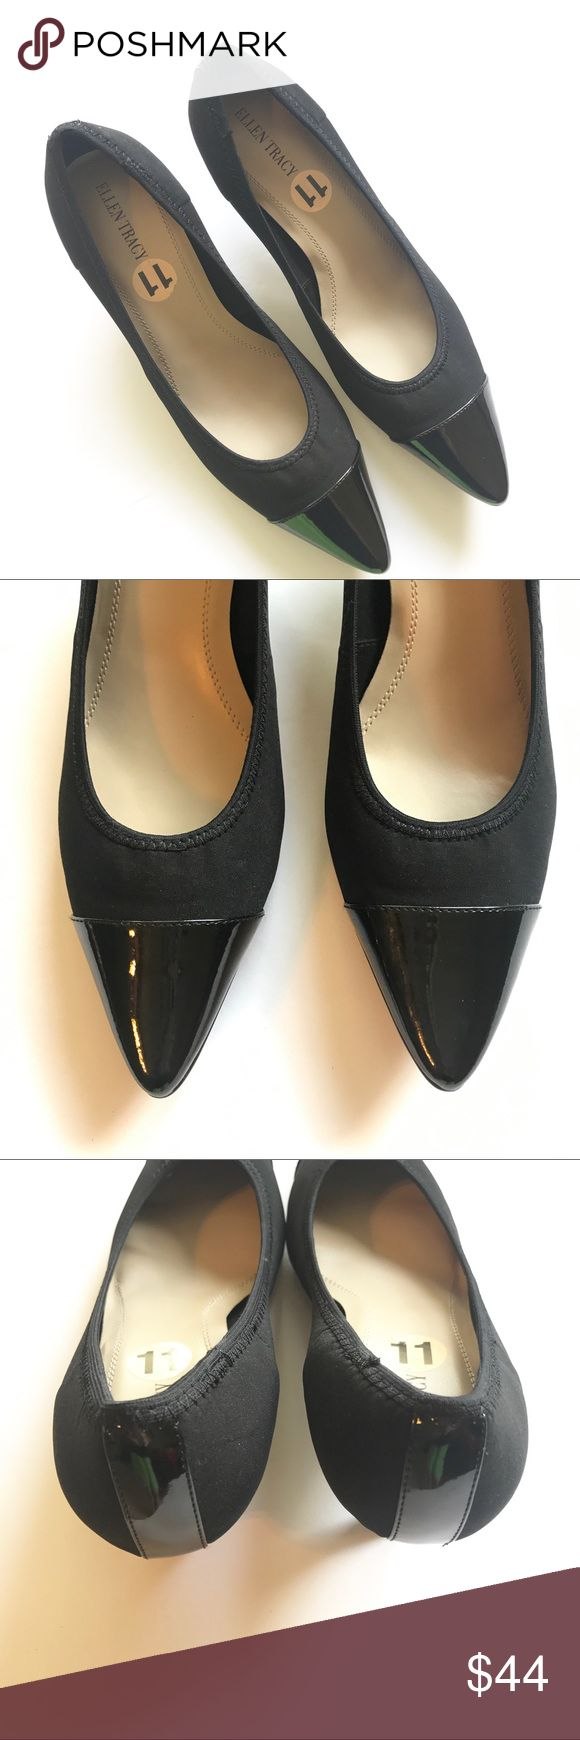 "Ellen Tracy 'Peggy' Mid Heeled Pumps Size 11 NWOT Ellen Tracy pumps have a manmade upper with stretch for comfort and a pointed, patent leather toe cap with a patent leather strip on the back of the shoe. Heel measures approximately 2"". Width is Medium (B, M) Style: Peggy. Smoke free home. Ellen Tracy Shoes Heels"